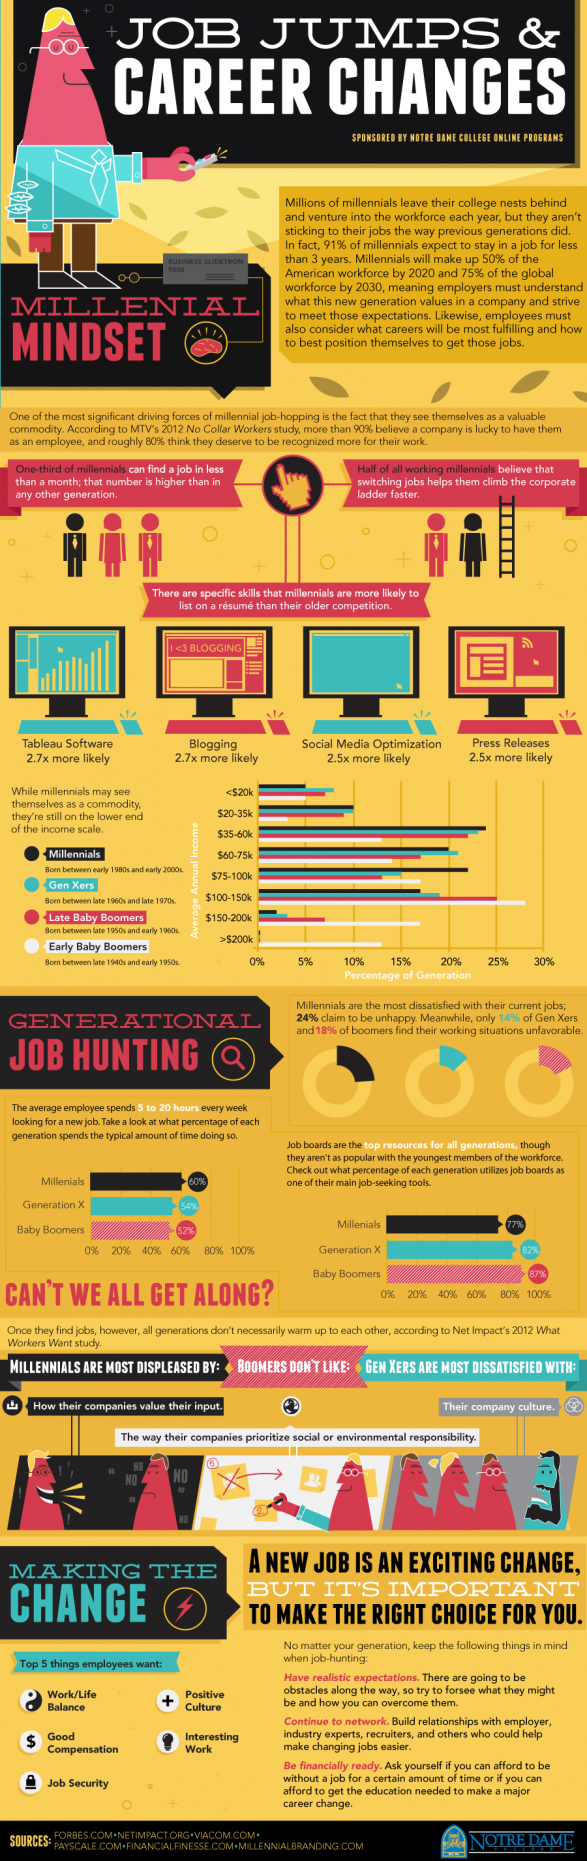 job jumps and career changes infographic the headhunters job jumps and career changes